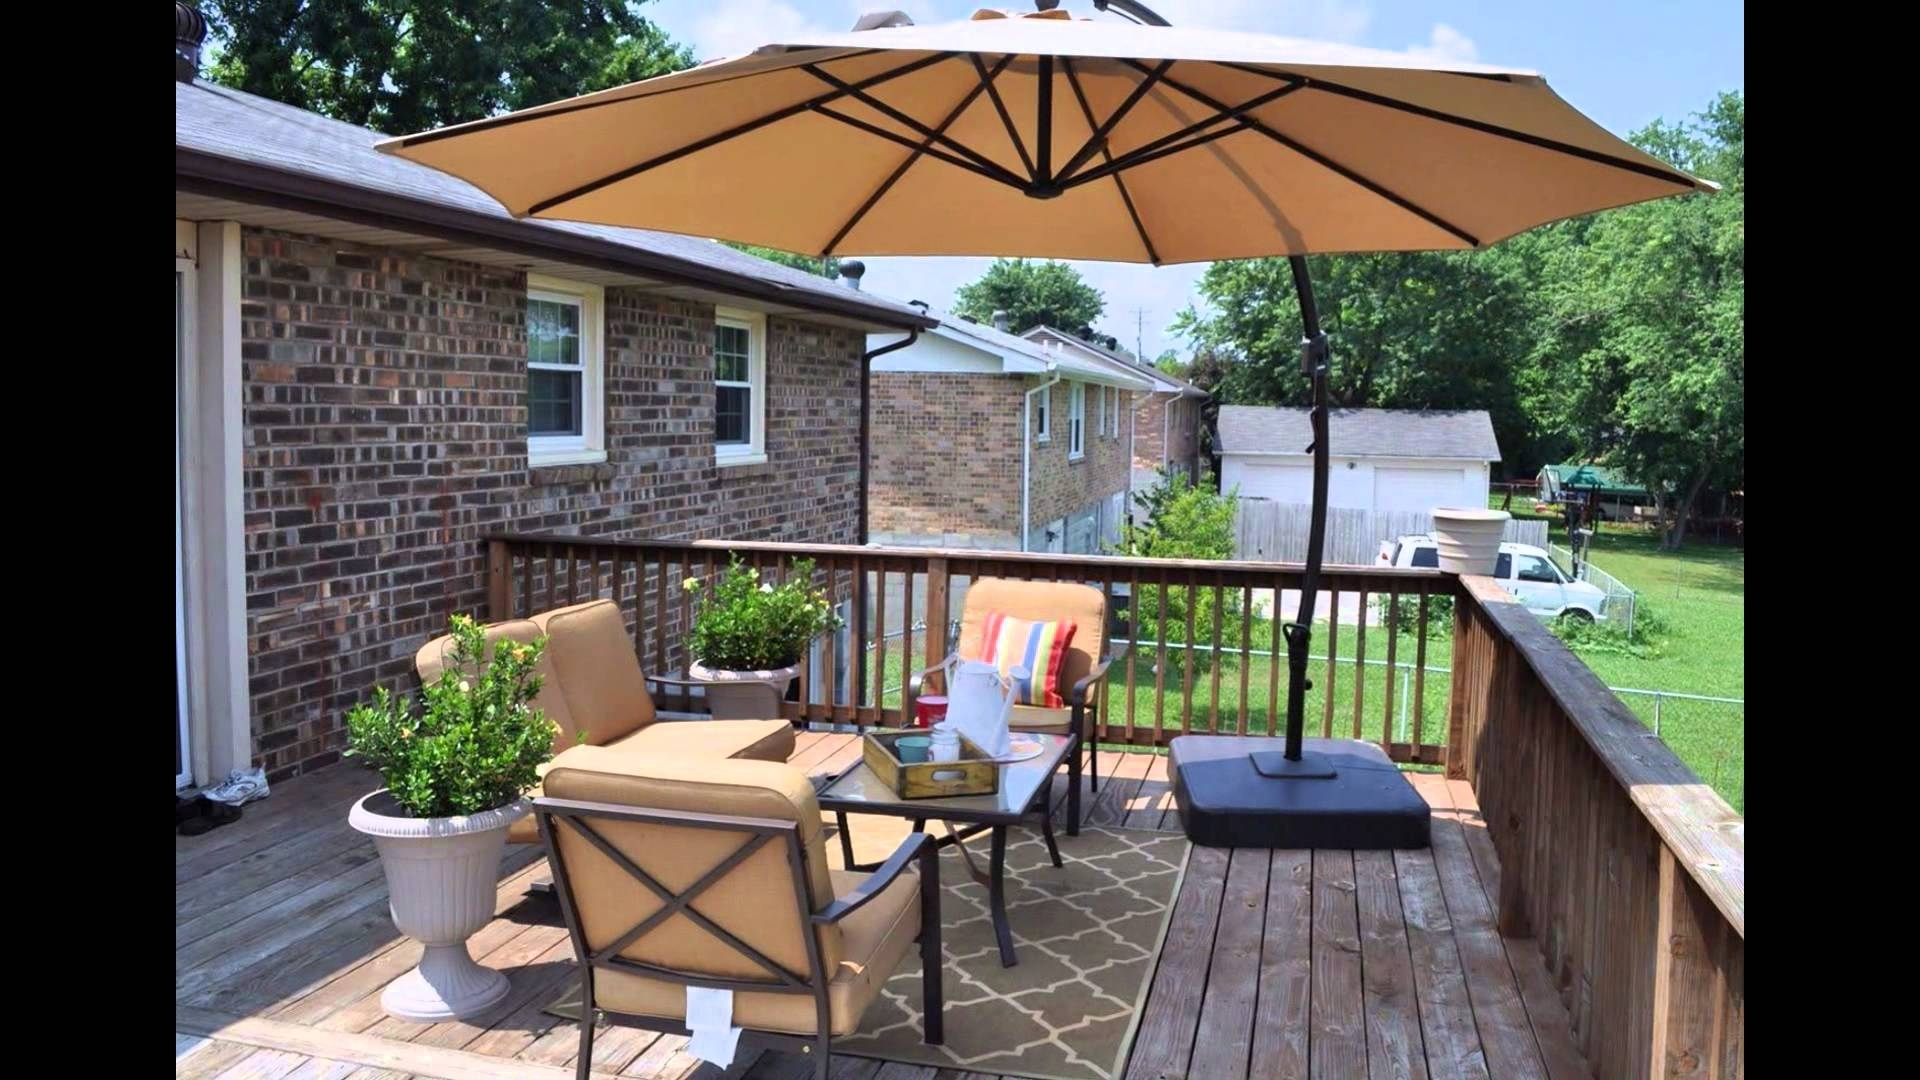 Lowes Patio Furniture – Youtube With Regard To Well Liked Lowes Patio Umbrellas (View 18 of 20)